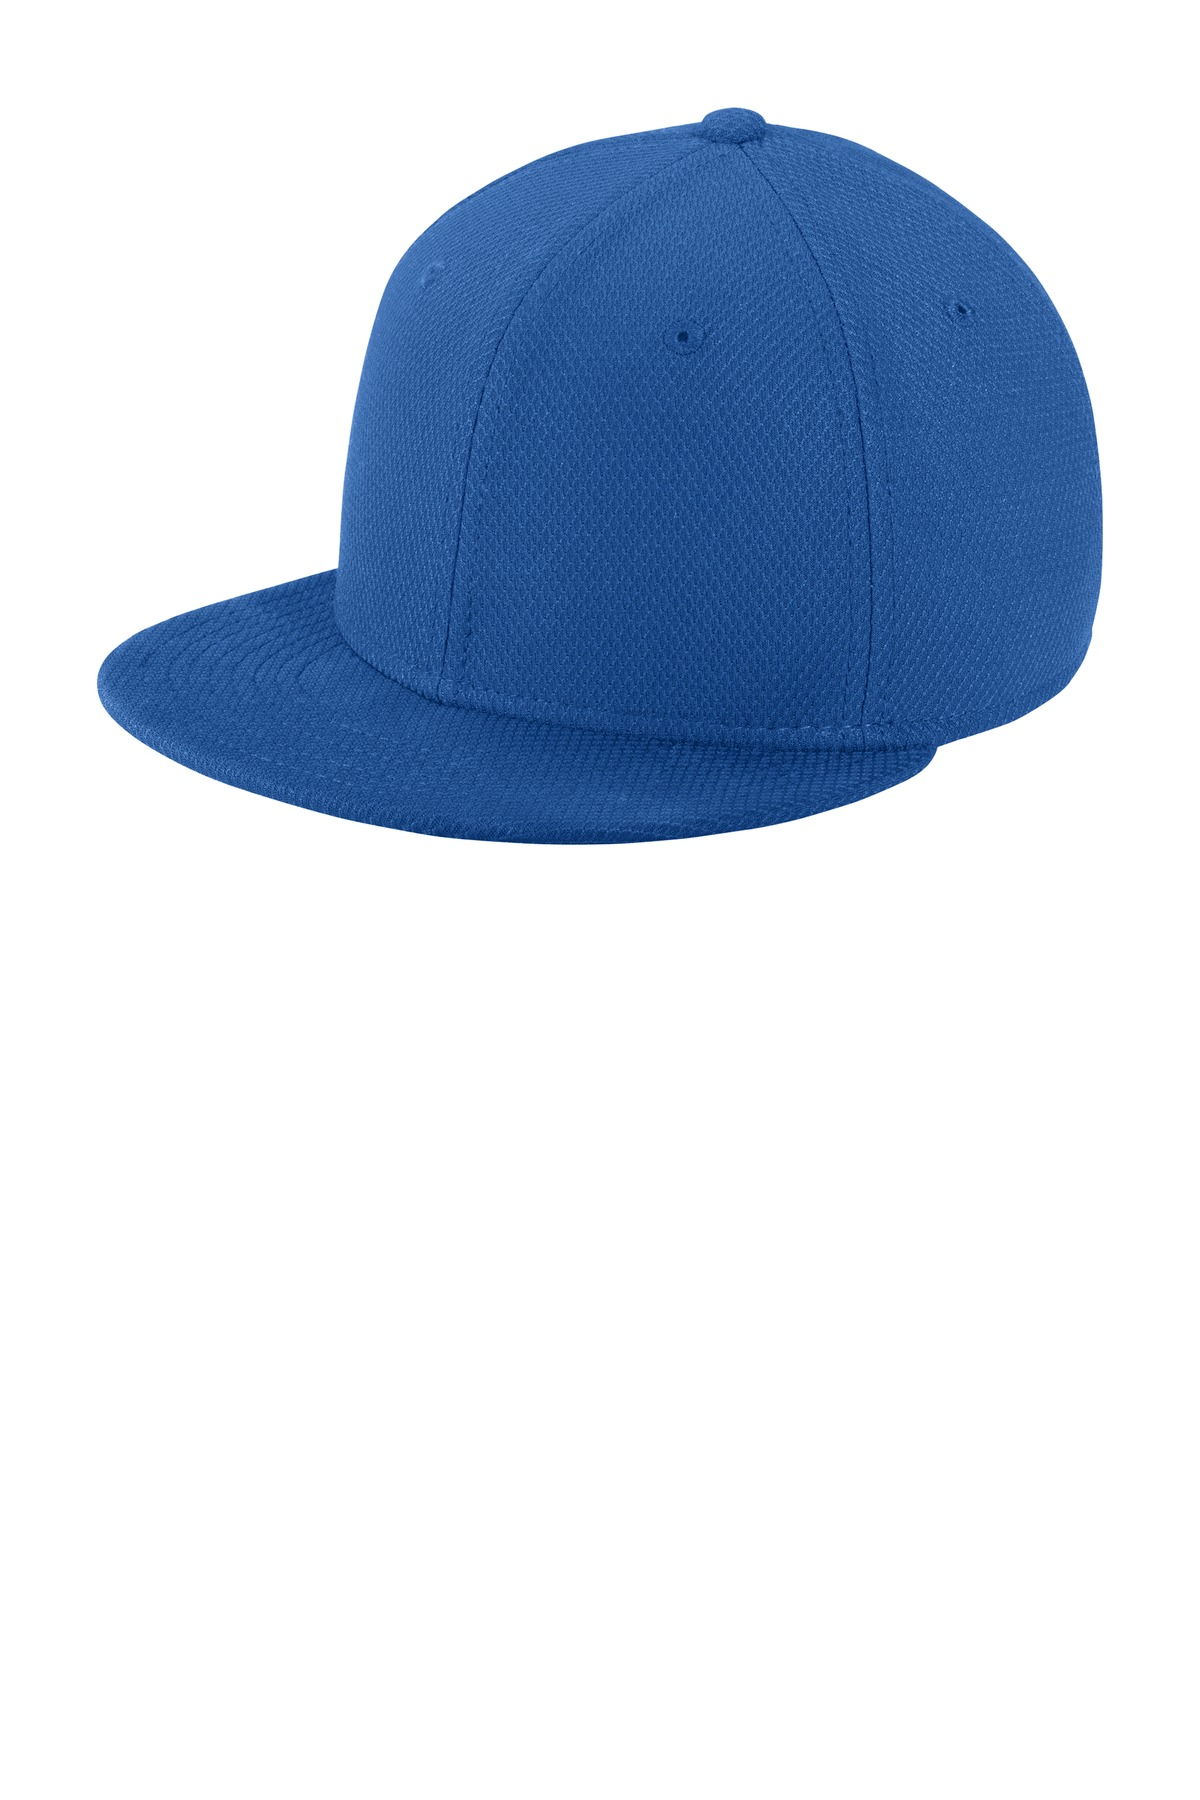 New Era  ®  Youth Original Fit Diamond Era Flat Bill Snapback Cap. NE304 - Royal